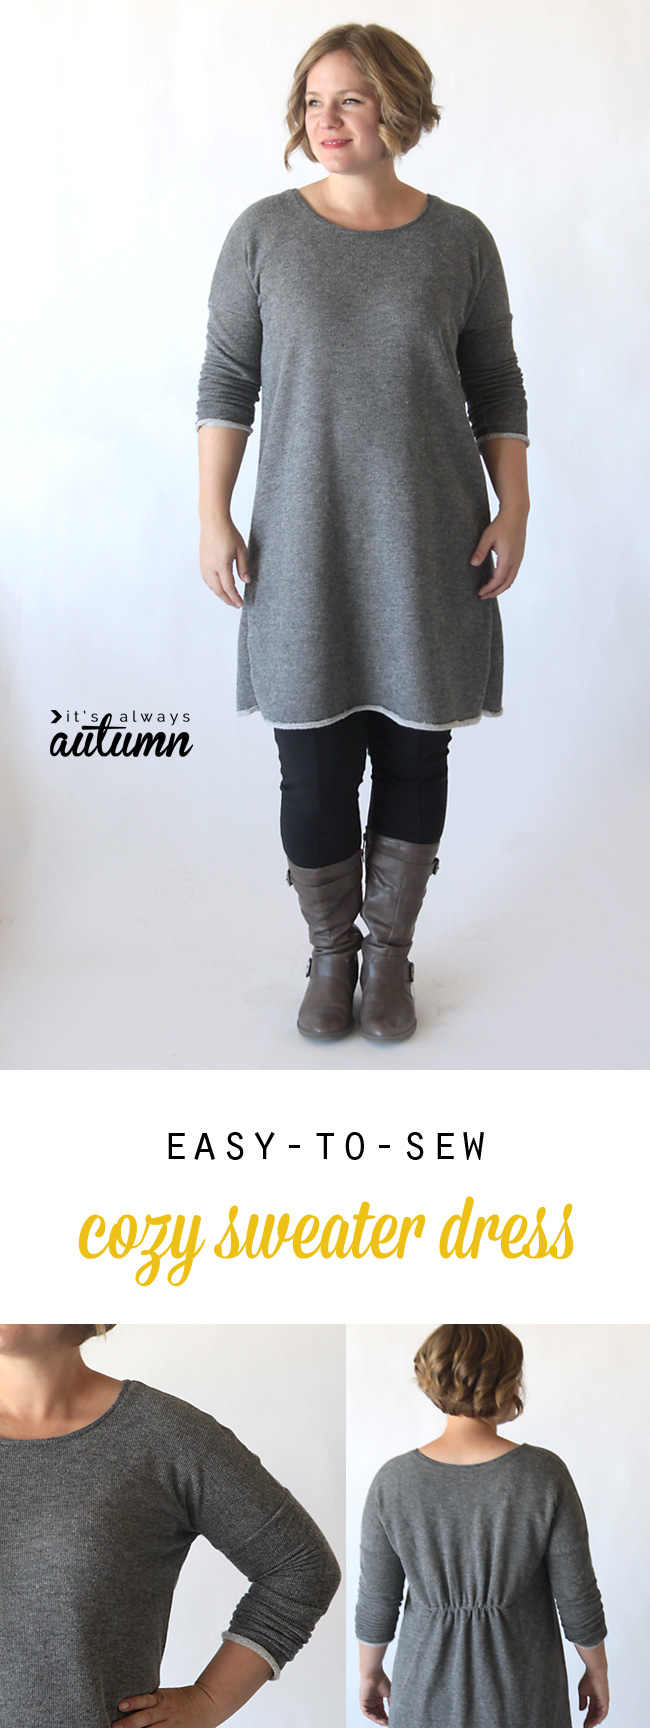 Learn how to sew this cute, easy to make DIY sweater dress or tunic with a free <i>sweater dress 2017</i> printable pattern and sewing tutorial.